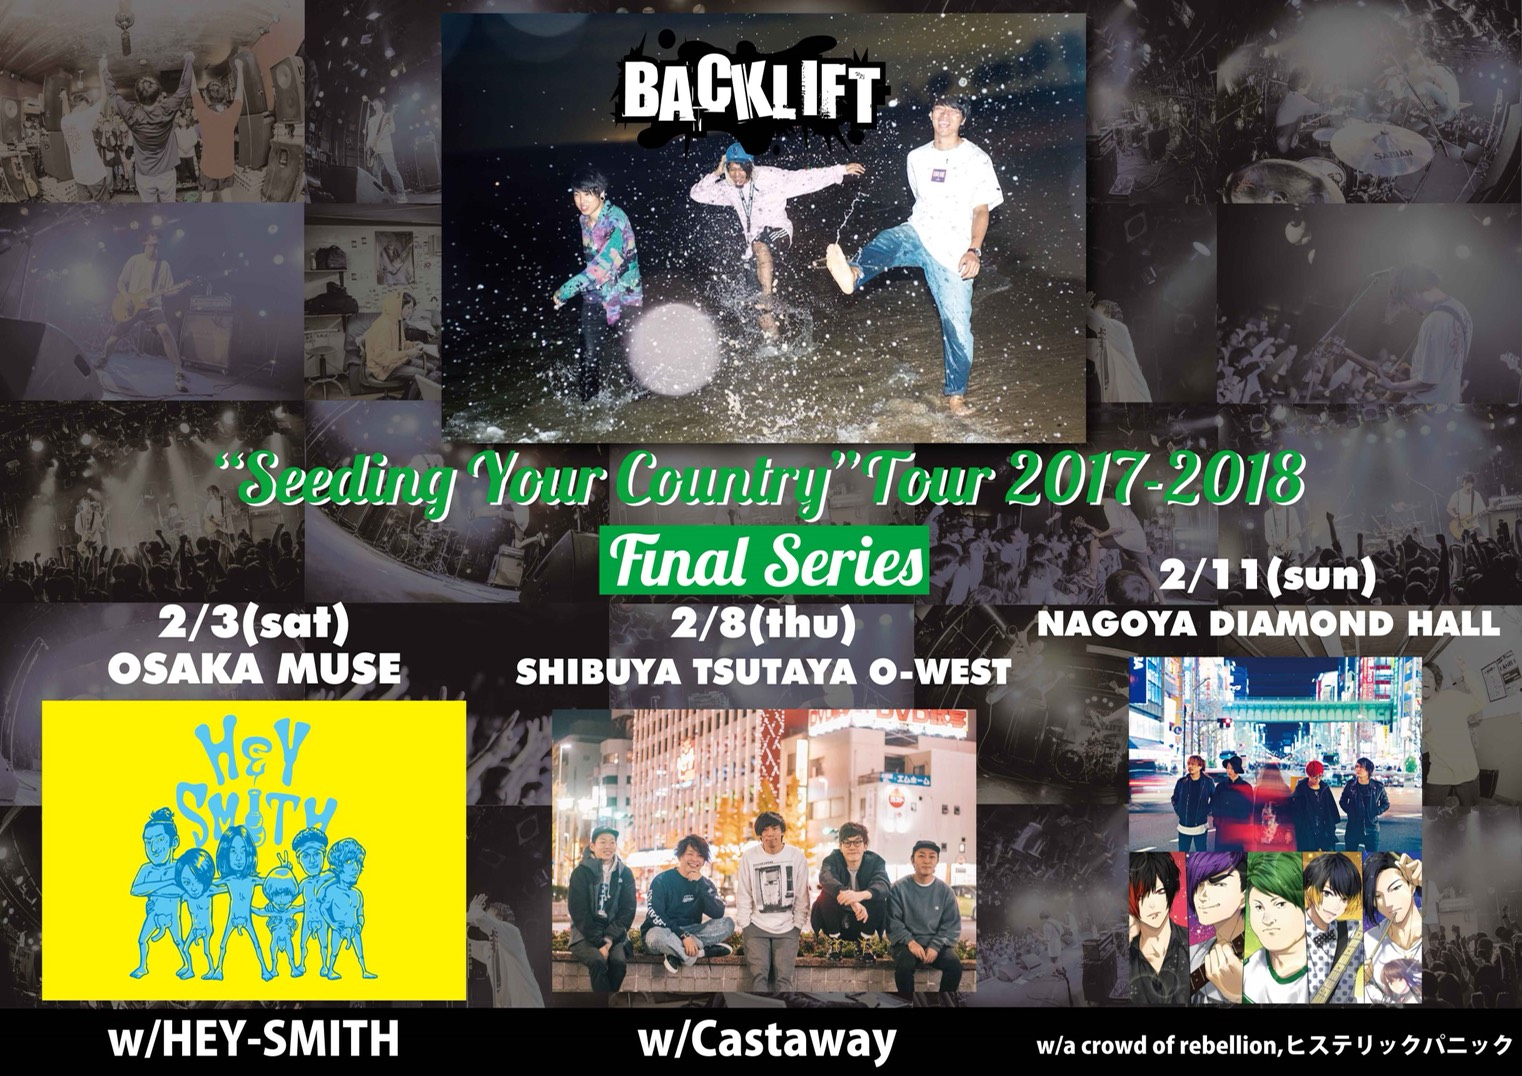 "BACKLIFT ""Seeding Your Country"" Tour Final Series"